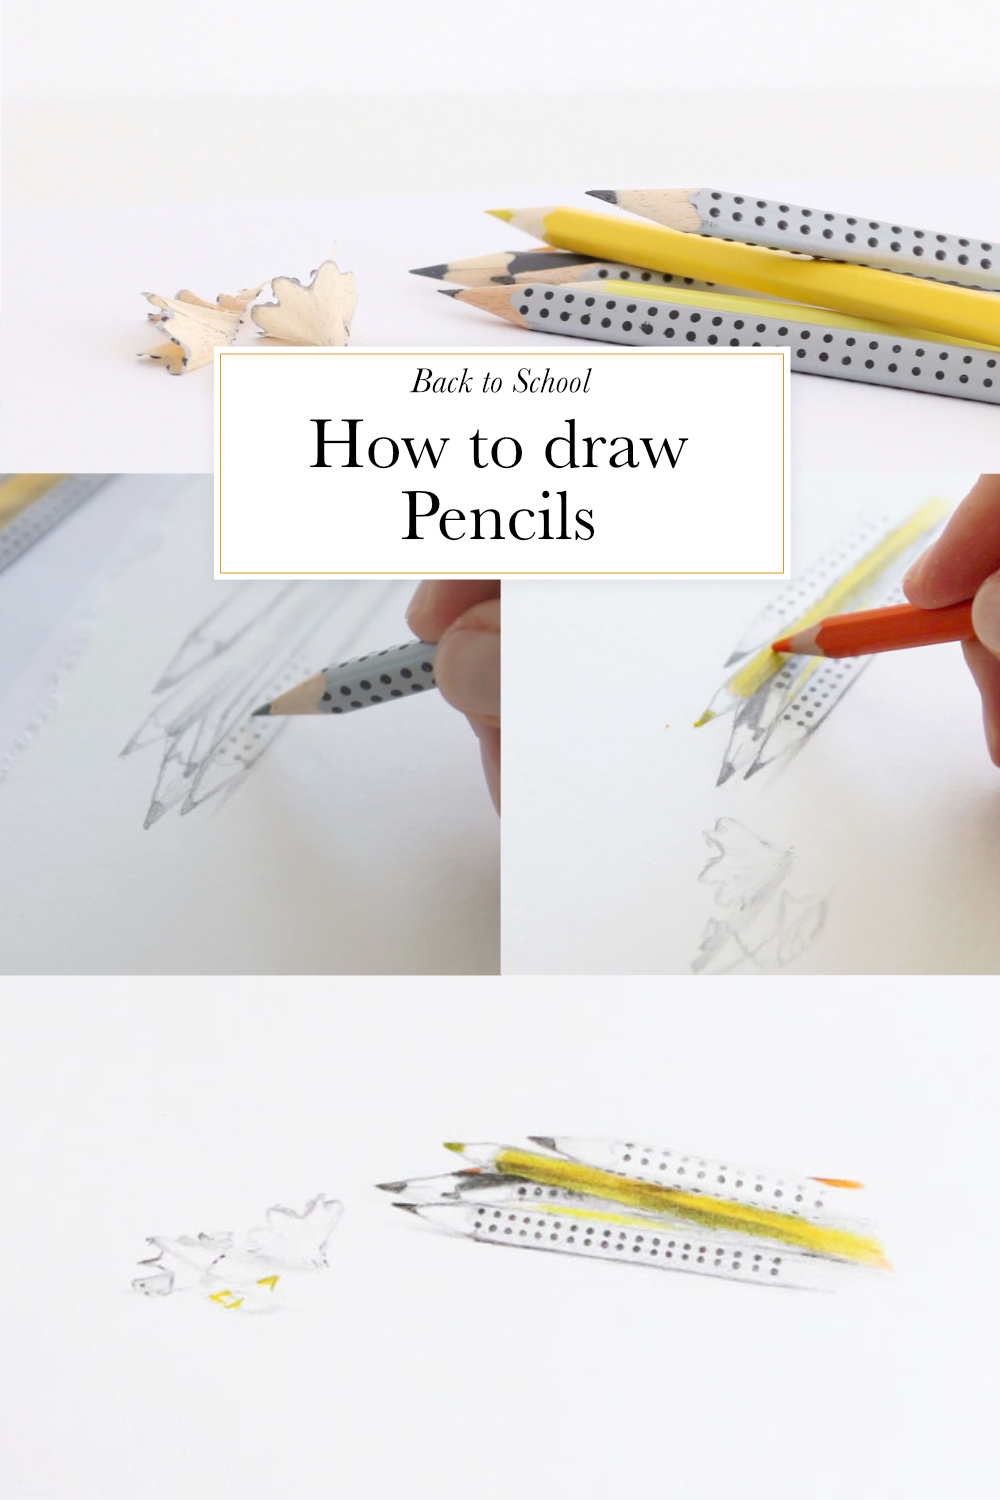 How to draw pencils | The Daily Atelier